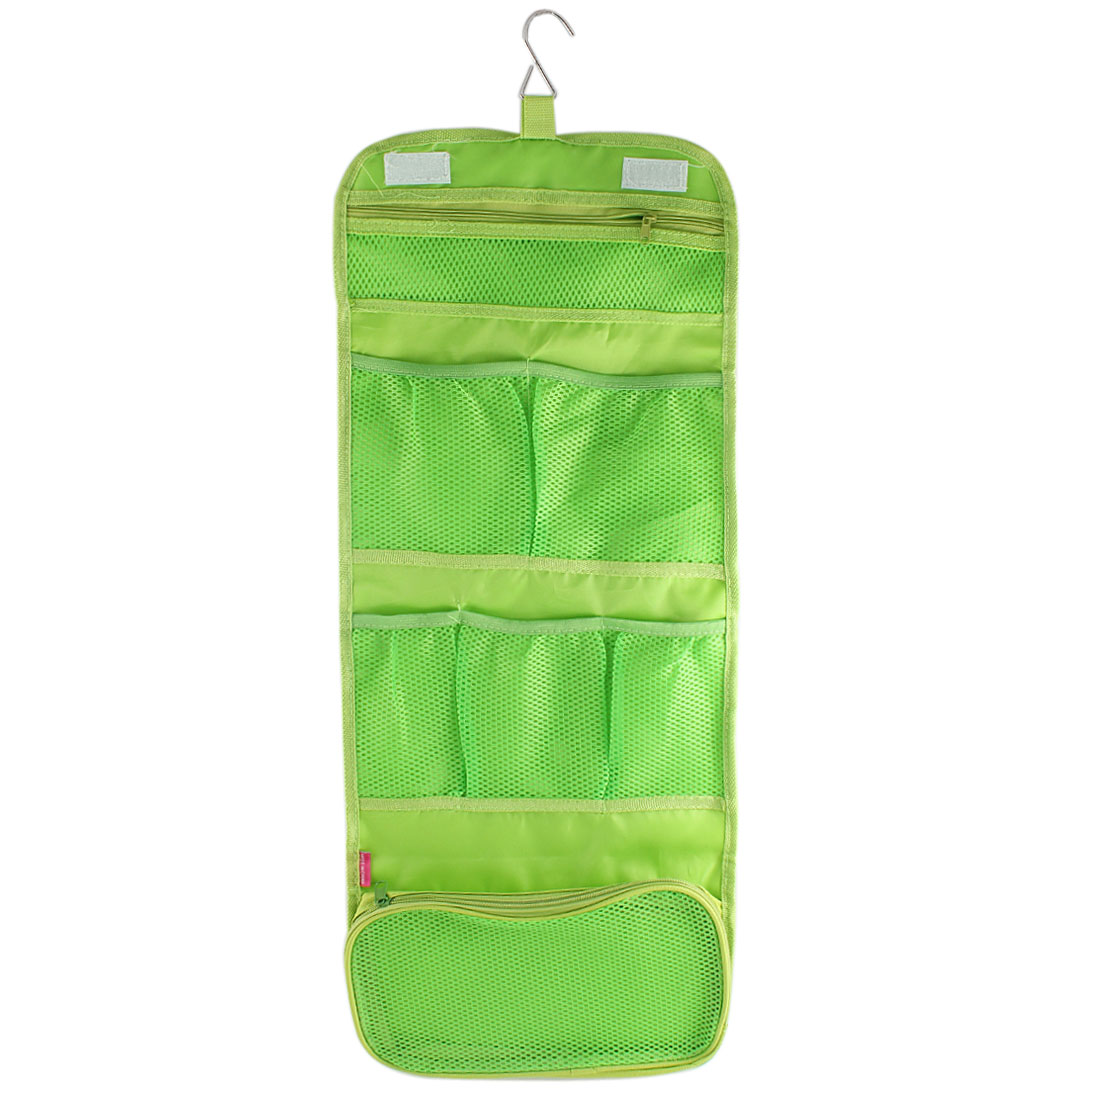 Outdoor Travel Green Nylon Makeup Cosmetic Pouch Case Toiletry Storage Bag Organizer w Hanging Hook